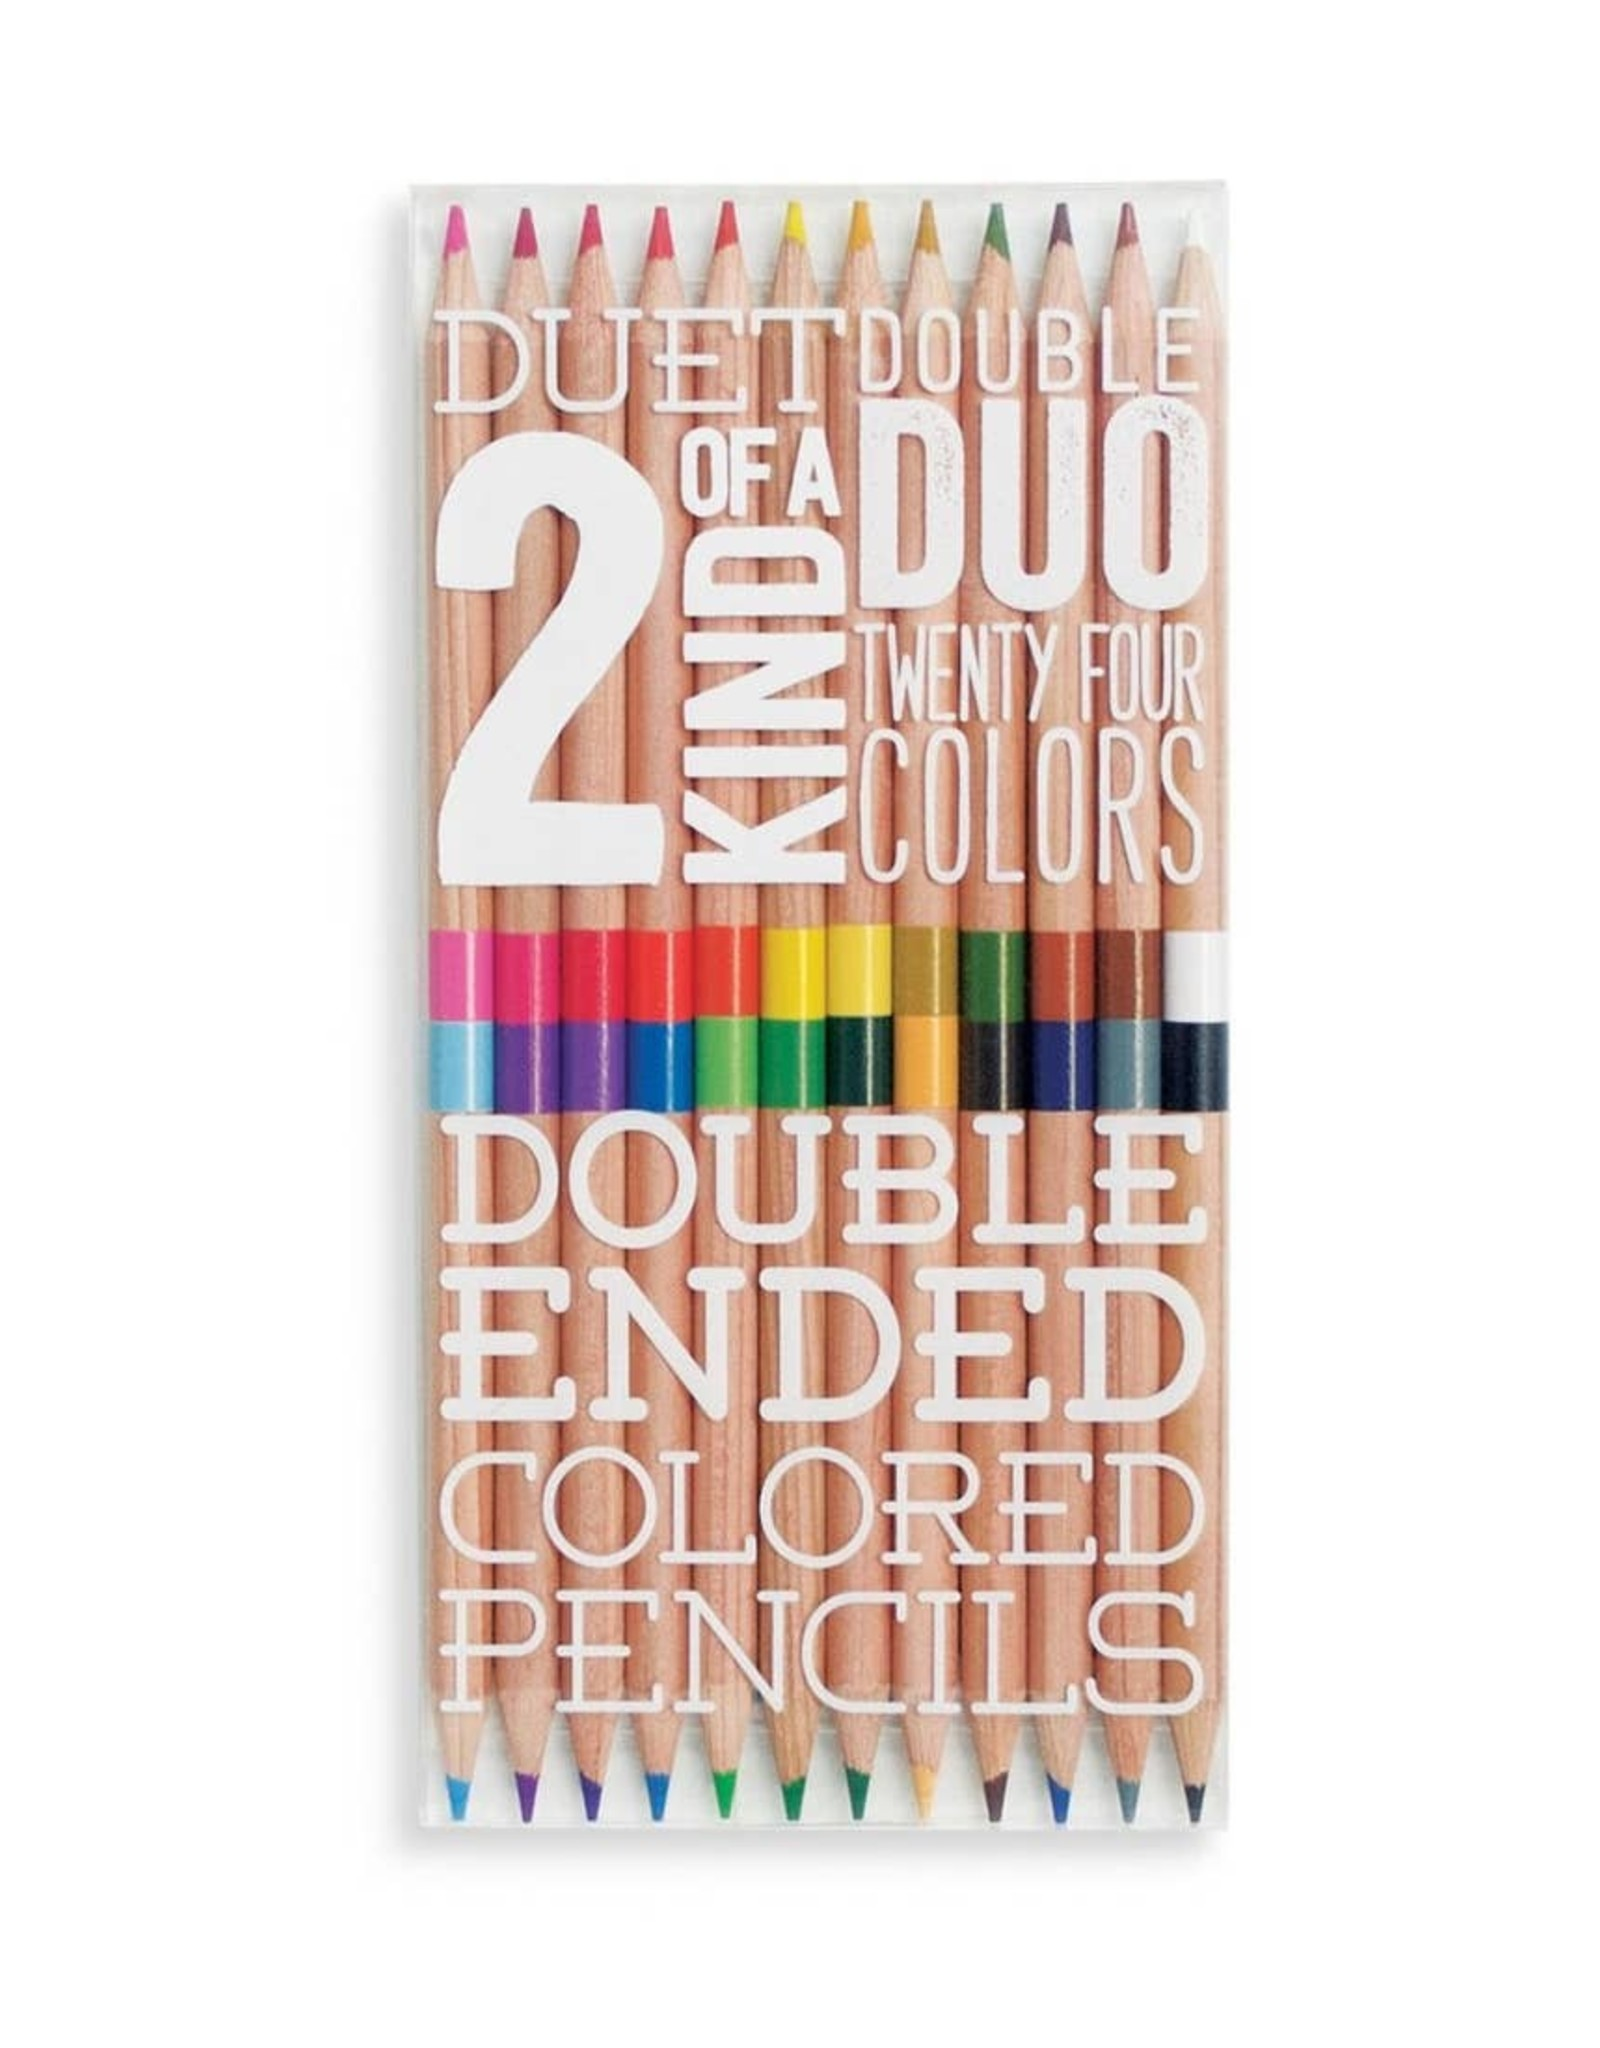 Ooly Ooly | 2 of a Kind Double Ended Colored Pencils